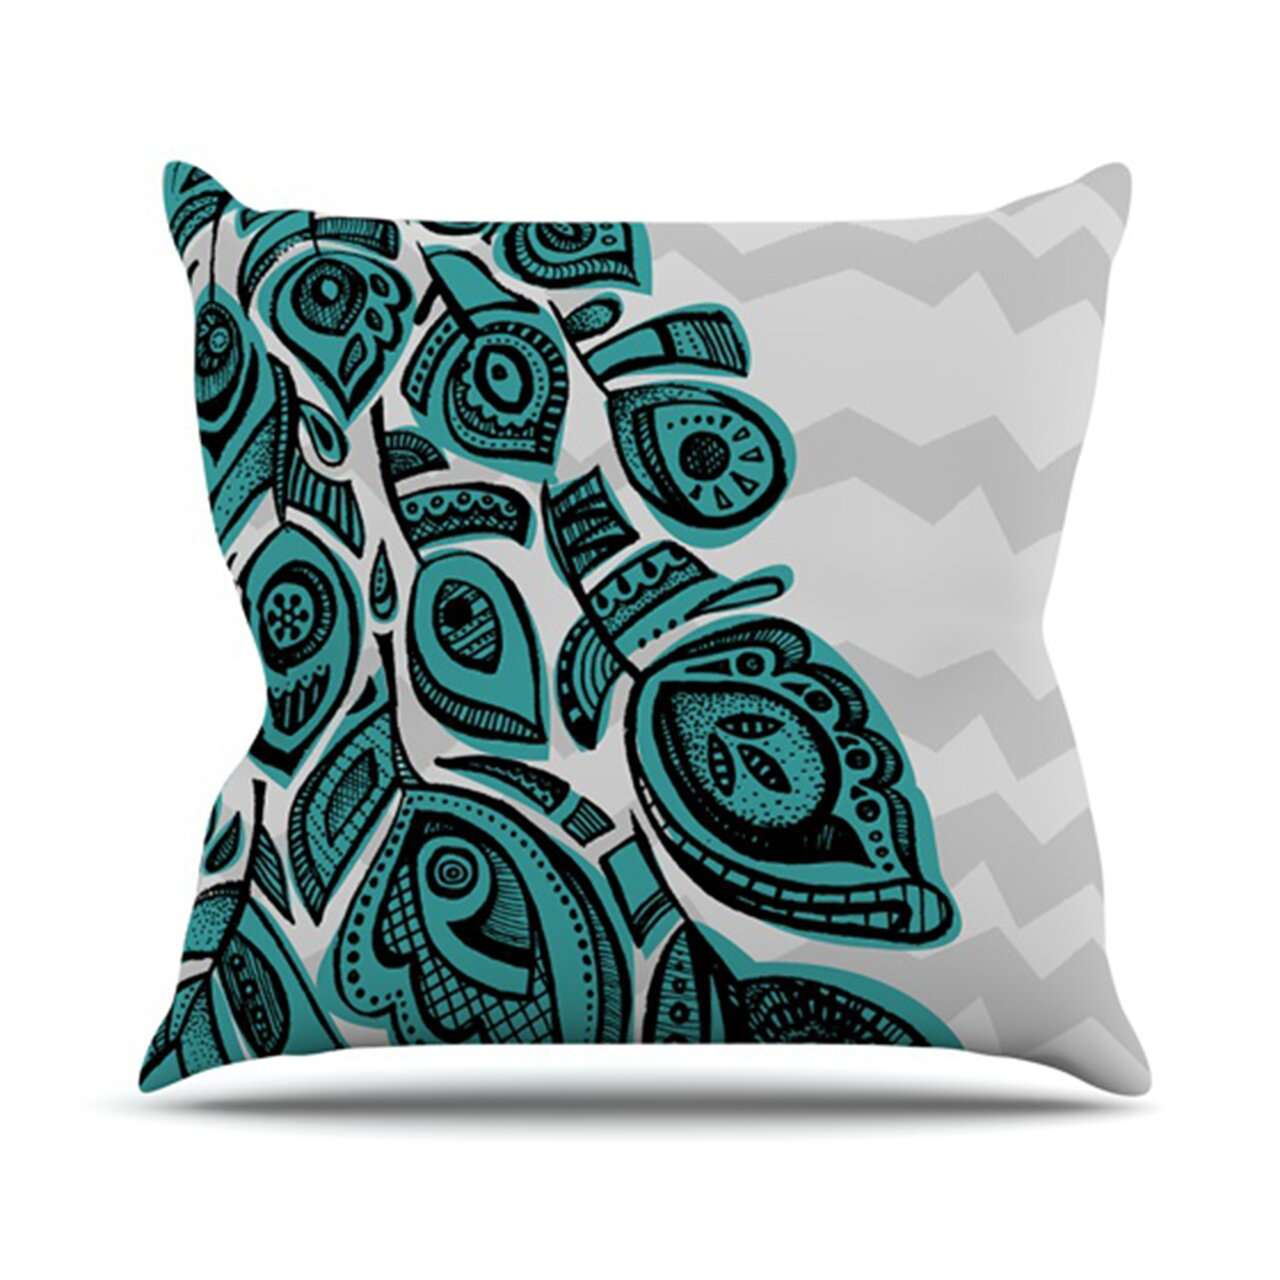 Peacock Blue Throw Pillow : KESS InHouse Peacock Throw Pillow & Reviews Wayfair